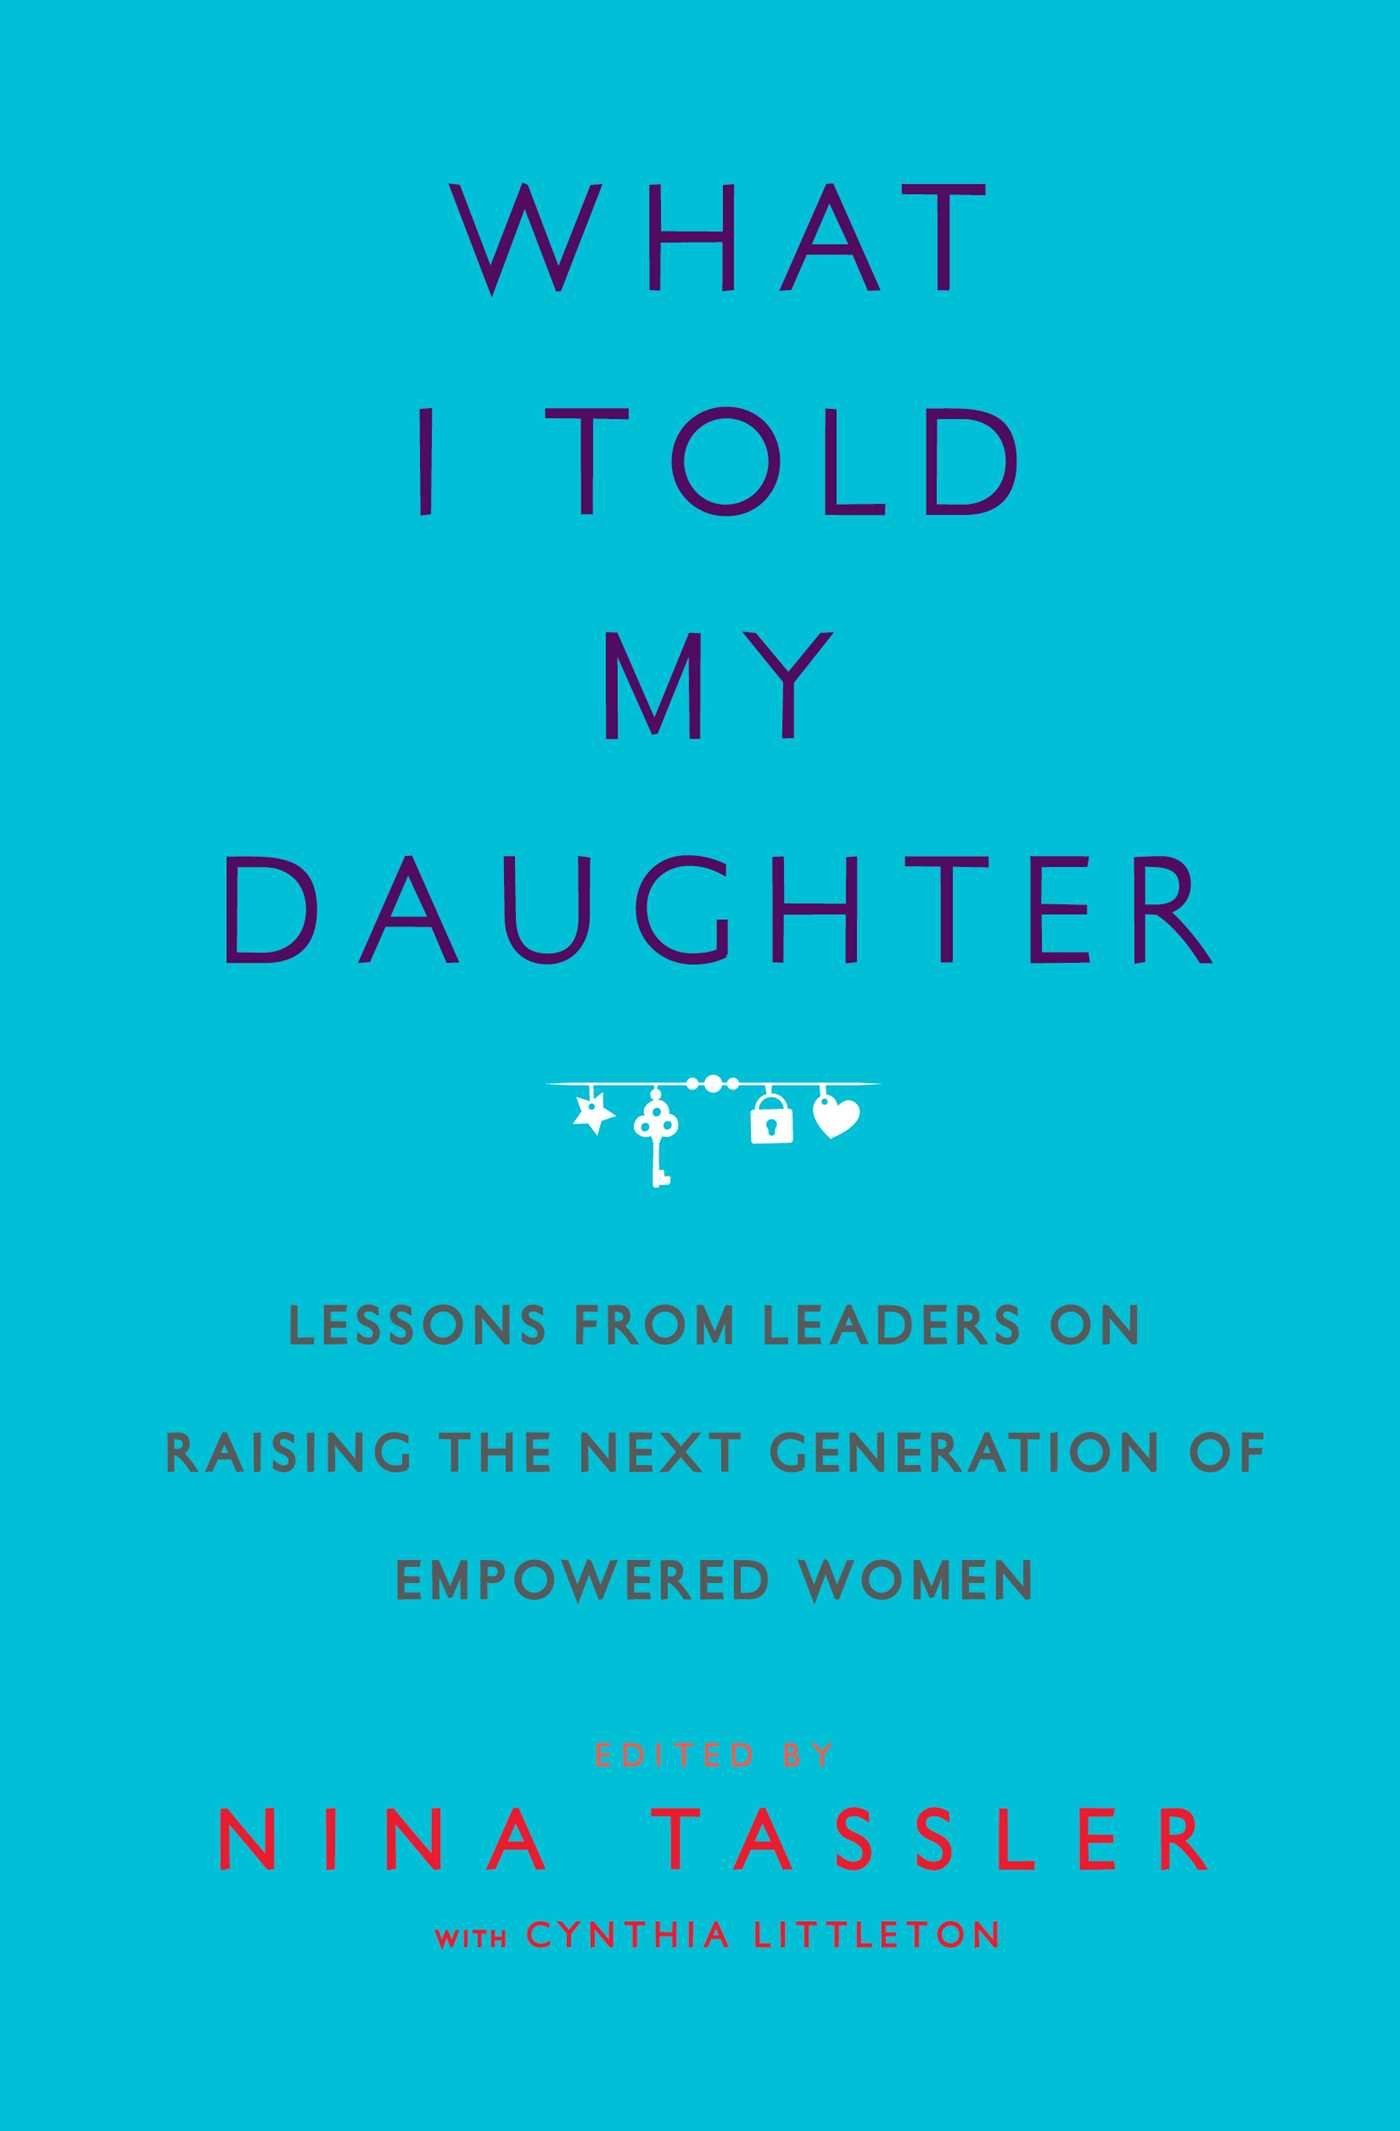 From Leaders Raising The Next Told Empowered ca Amazon Generation Women What Nina Of - 9781476734682 My I Daughter Books On Cynthia Littleton Tassler Lessons